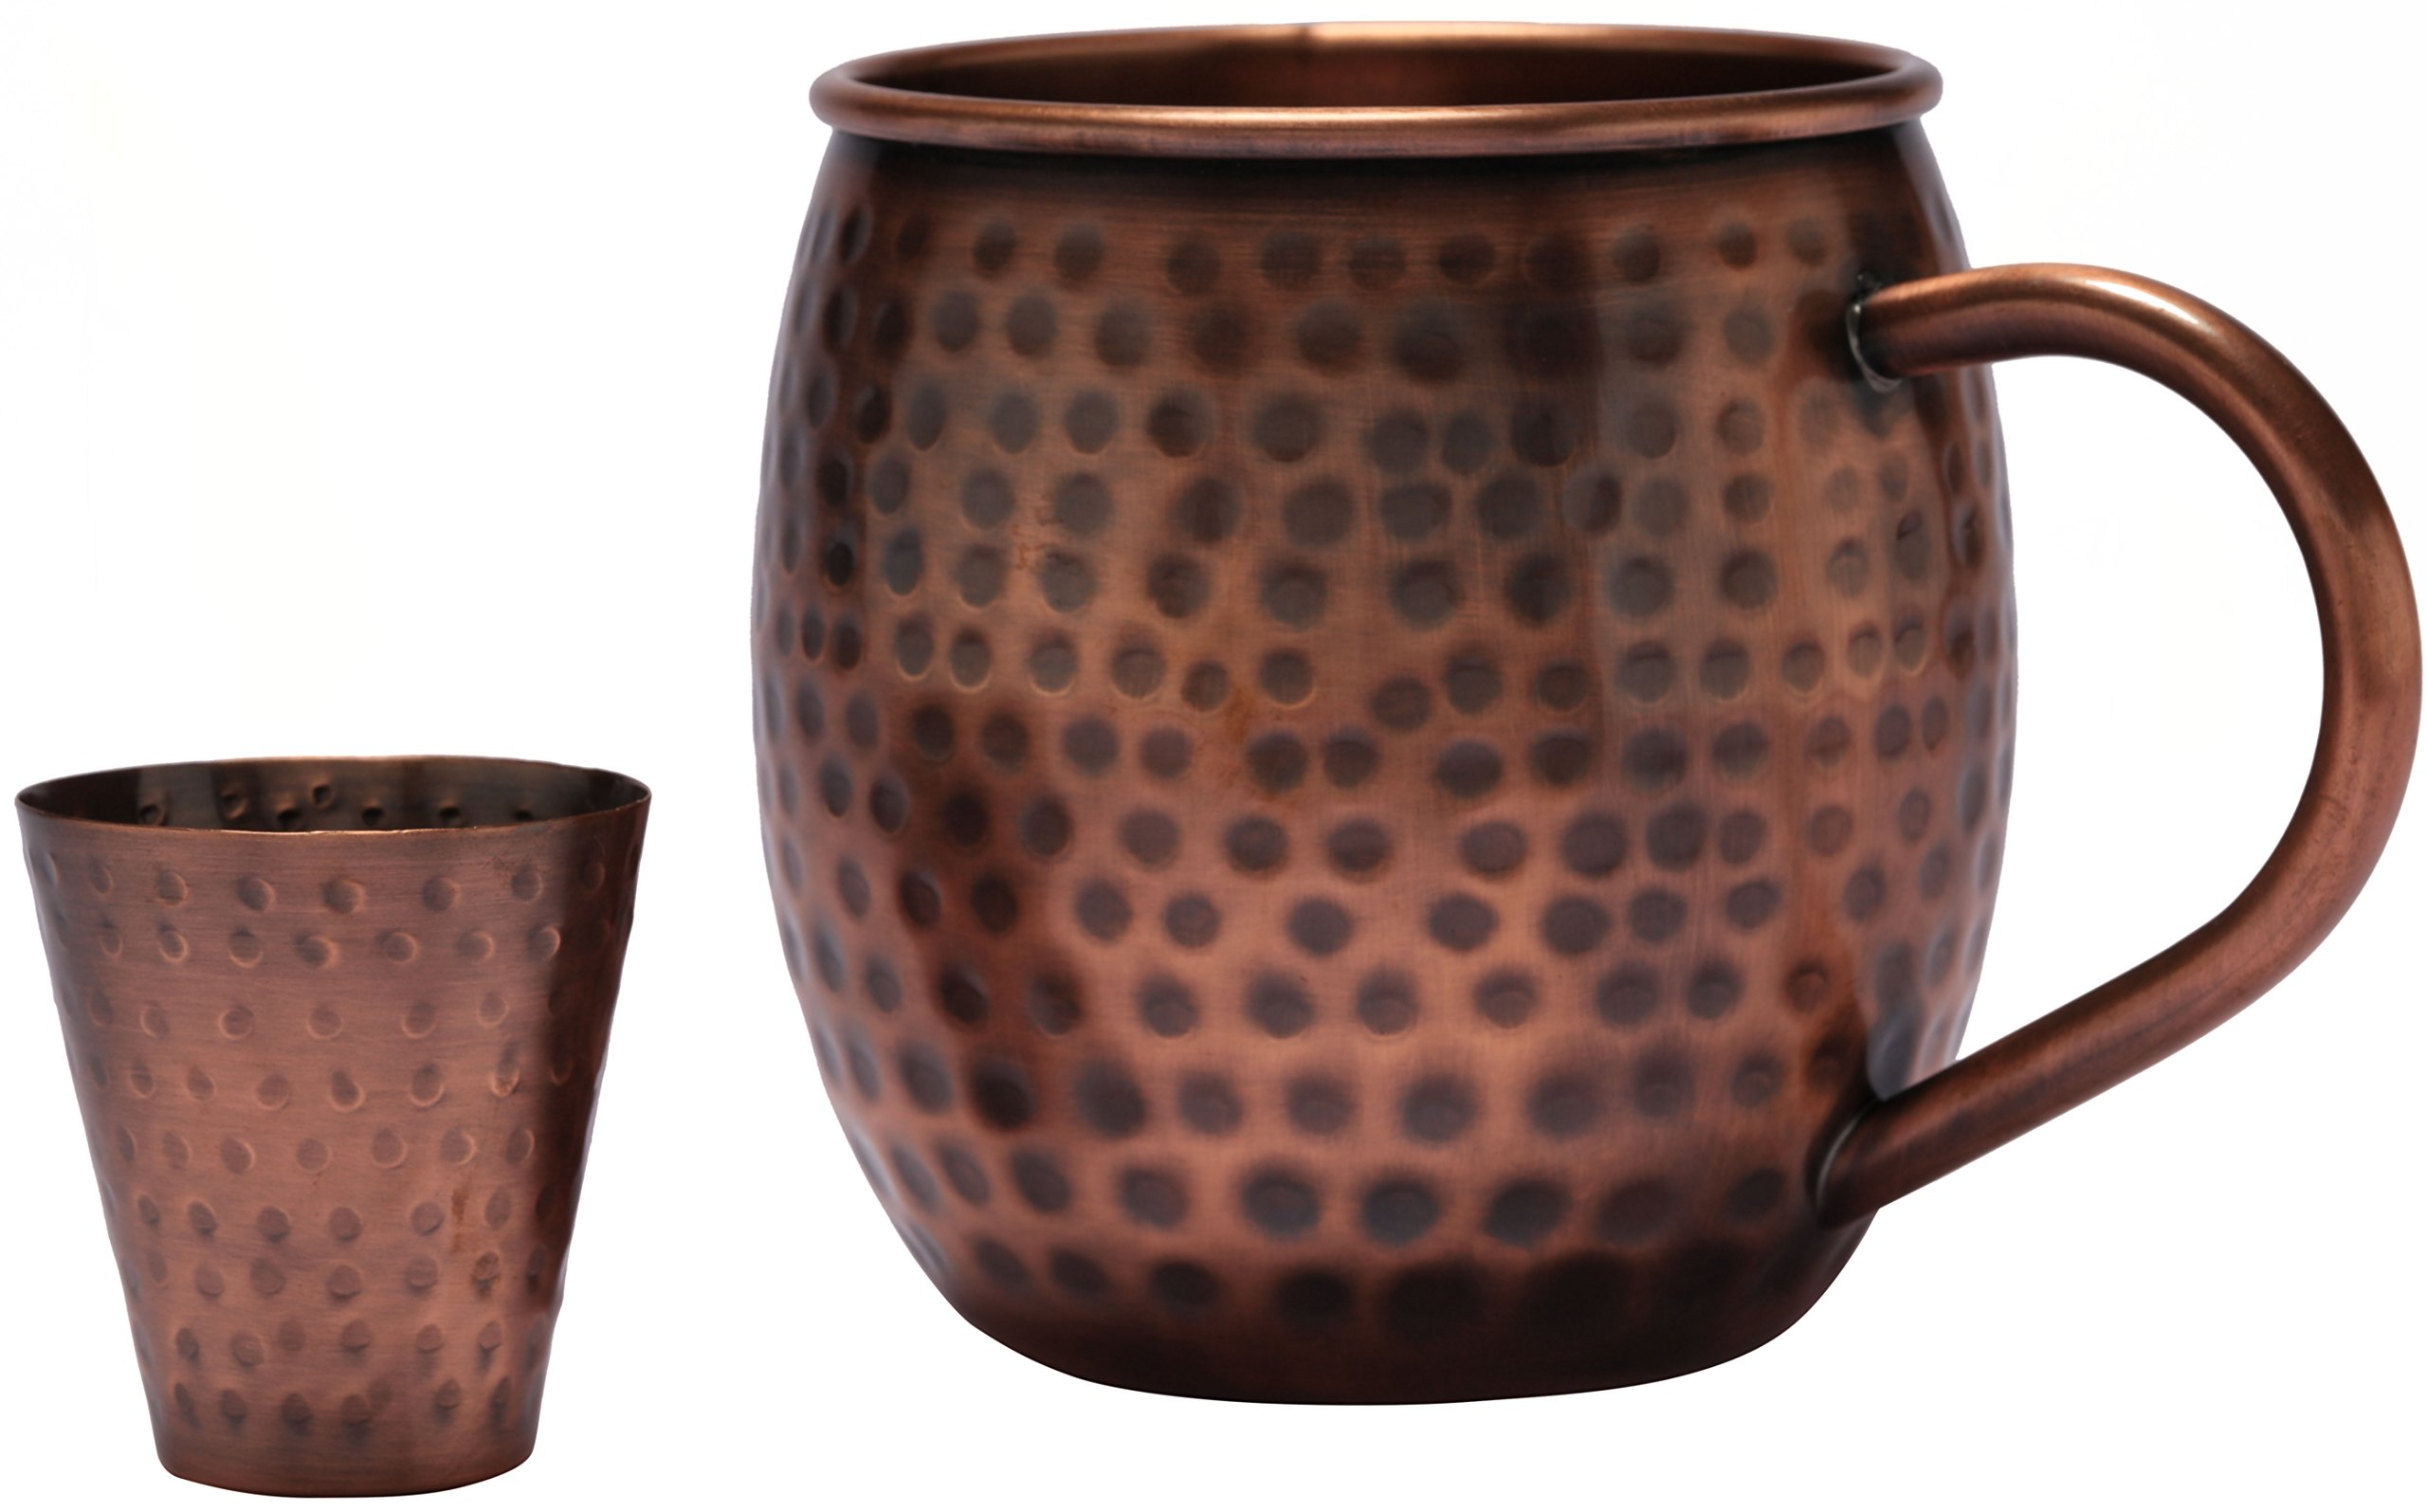 Melange 24 Oz Antique Finish Copper Barrel Mug for Moscow Mules, Set of 24 with Six Shot Glasses - 100% Pure Hammered Copper - Heavy Gauge - No Lining - Includes Free Recipe Card